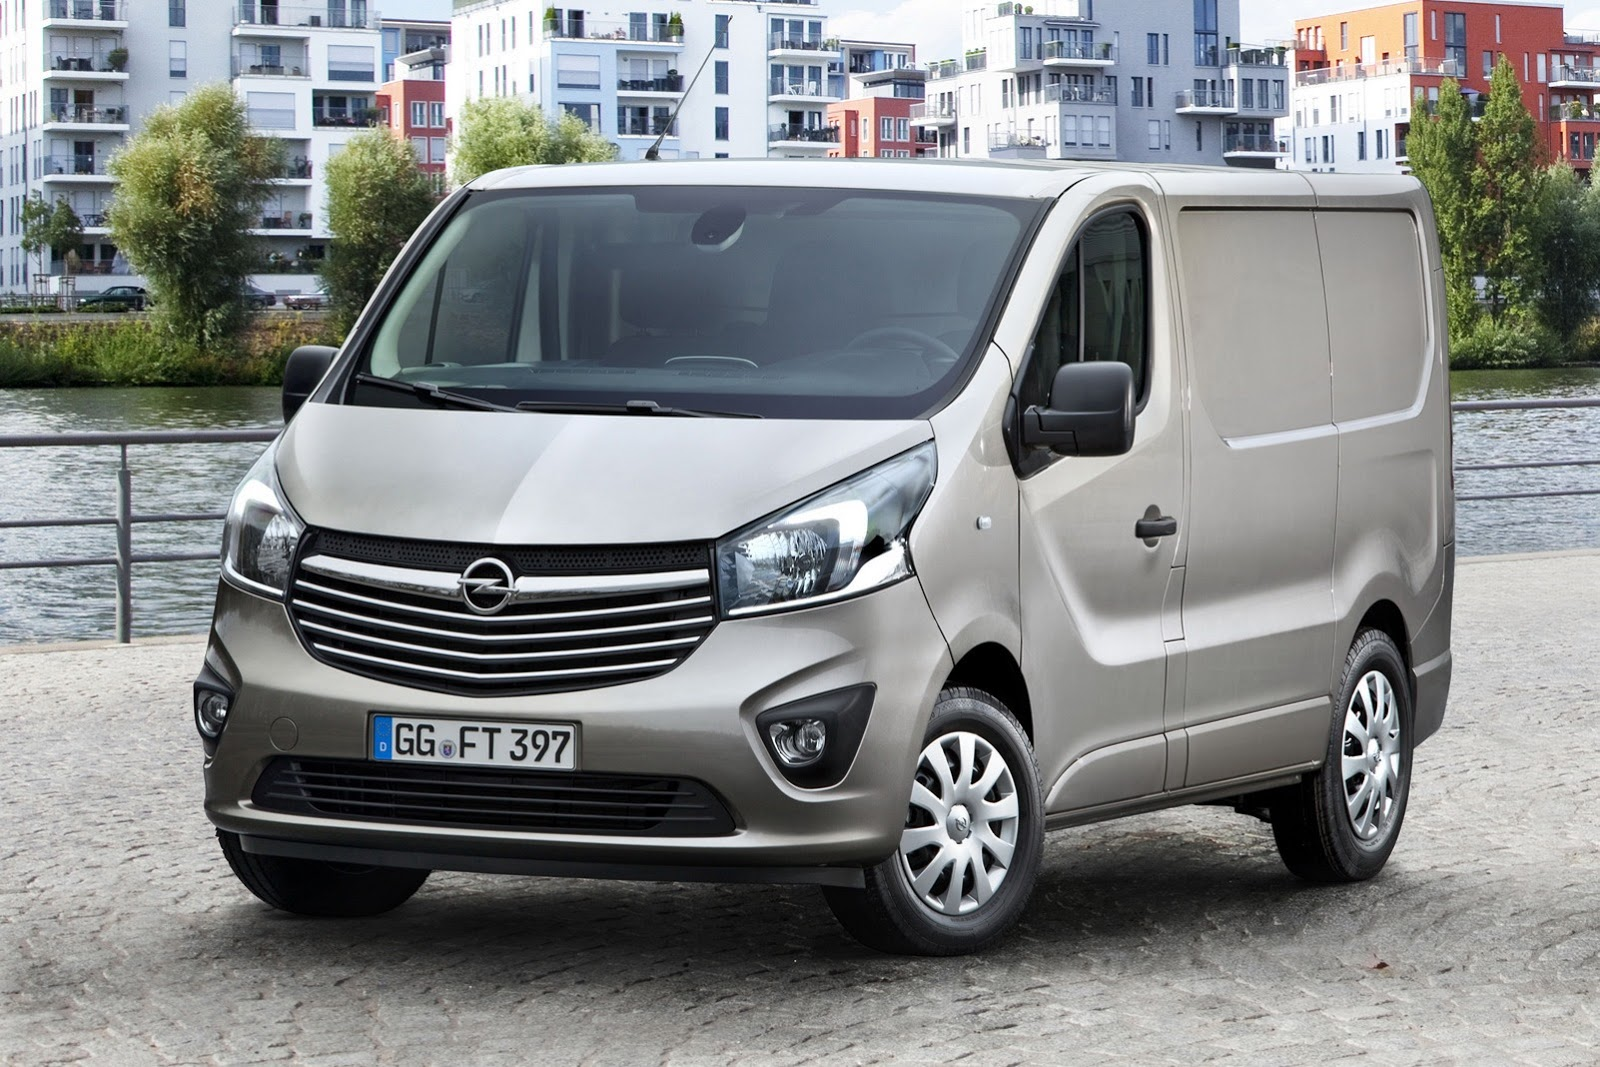 New Fiat Talento Joins The Renault Traffic And Opel